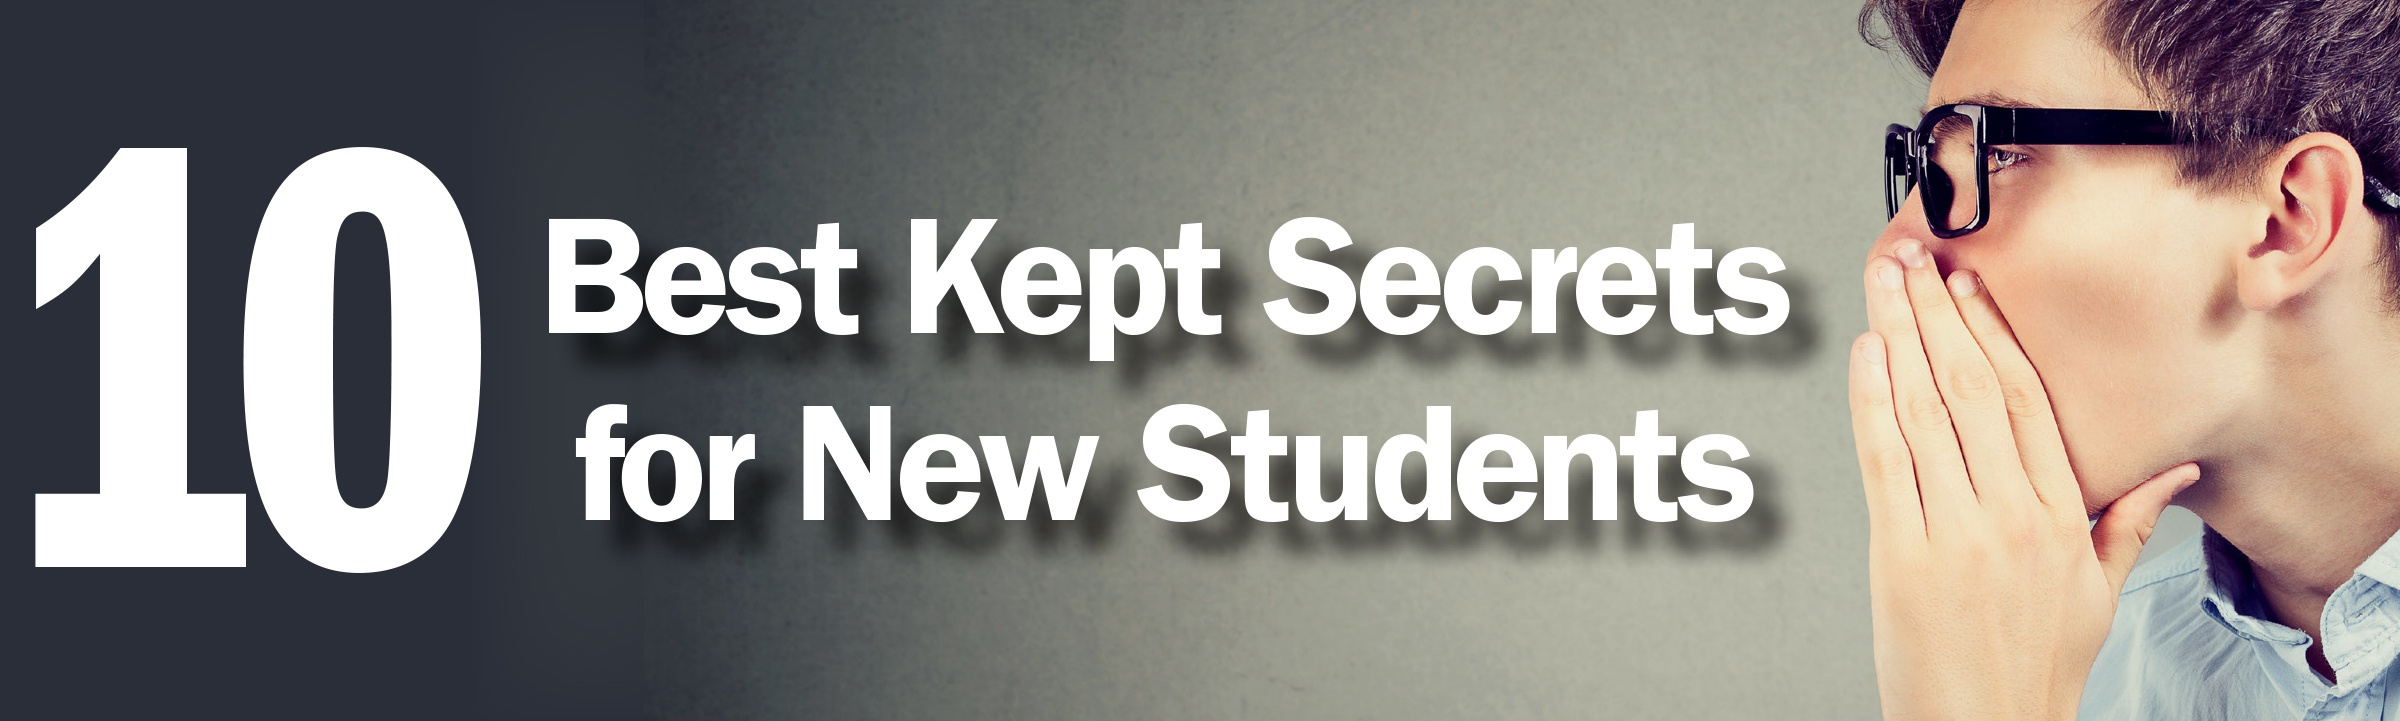 best kept secrets banner2